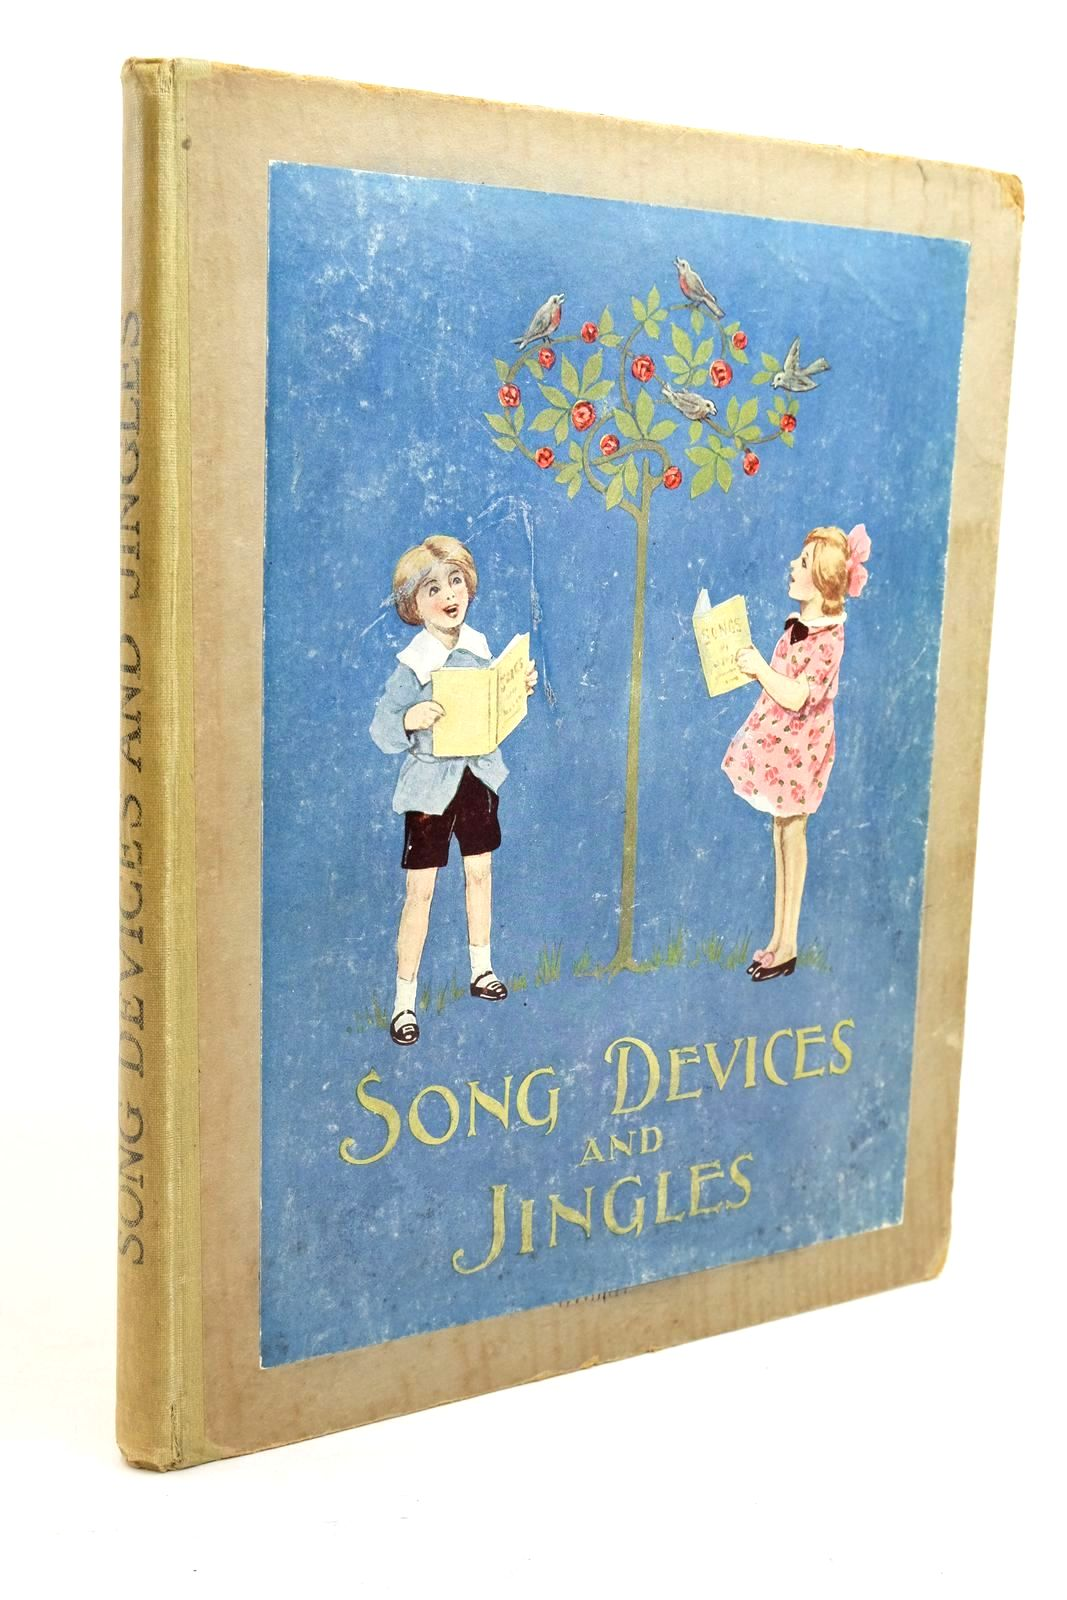 Photo of SONG DEVICES AND JINGLES written by Smith, Eleanor illustrated by Young, Florence Pearse, S.B. Nixon, Kathleen published by Waverley Book Company Ltd. (STOCK CODE: 1321165)  for sale by Stella & Rose's Books